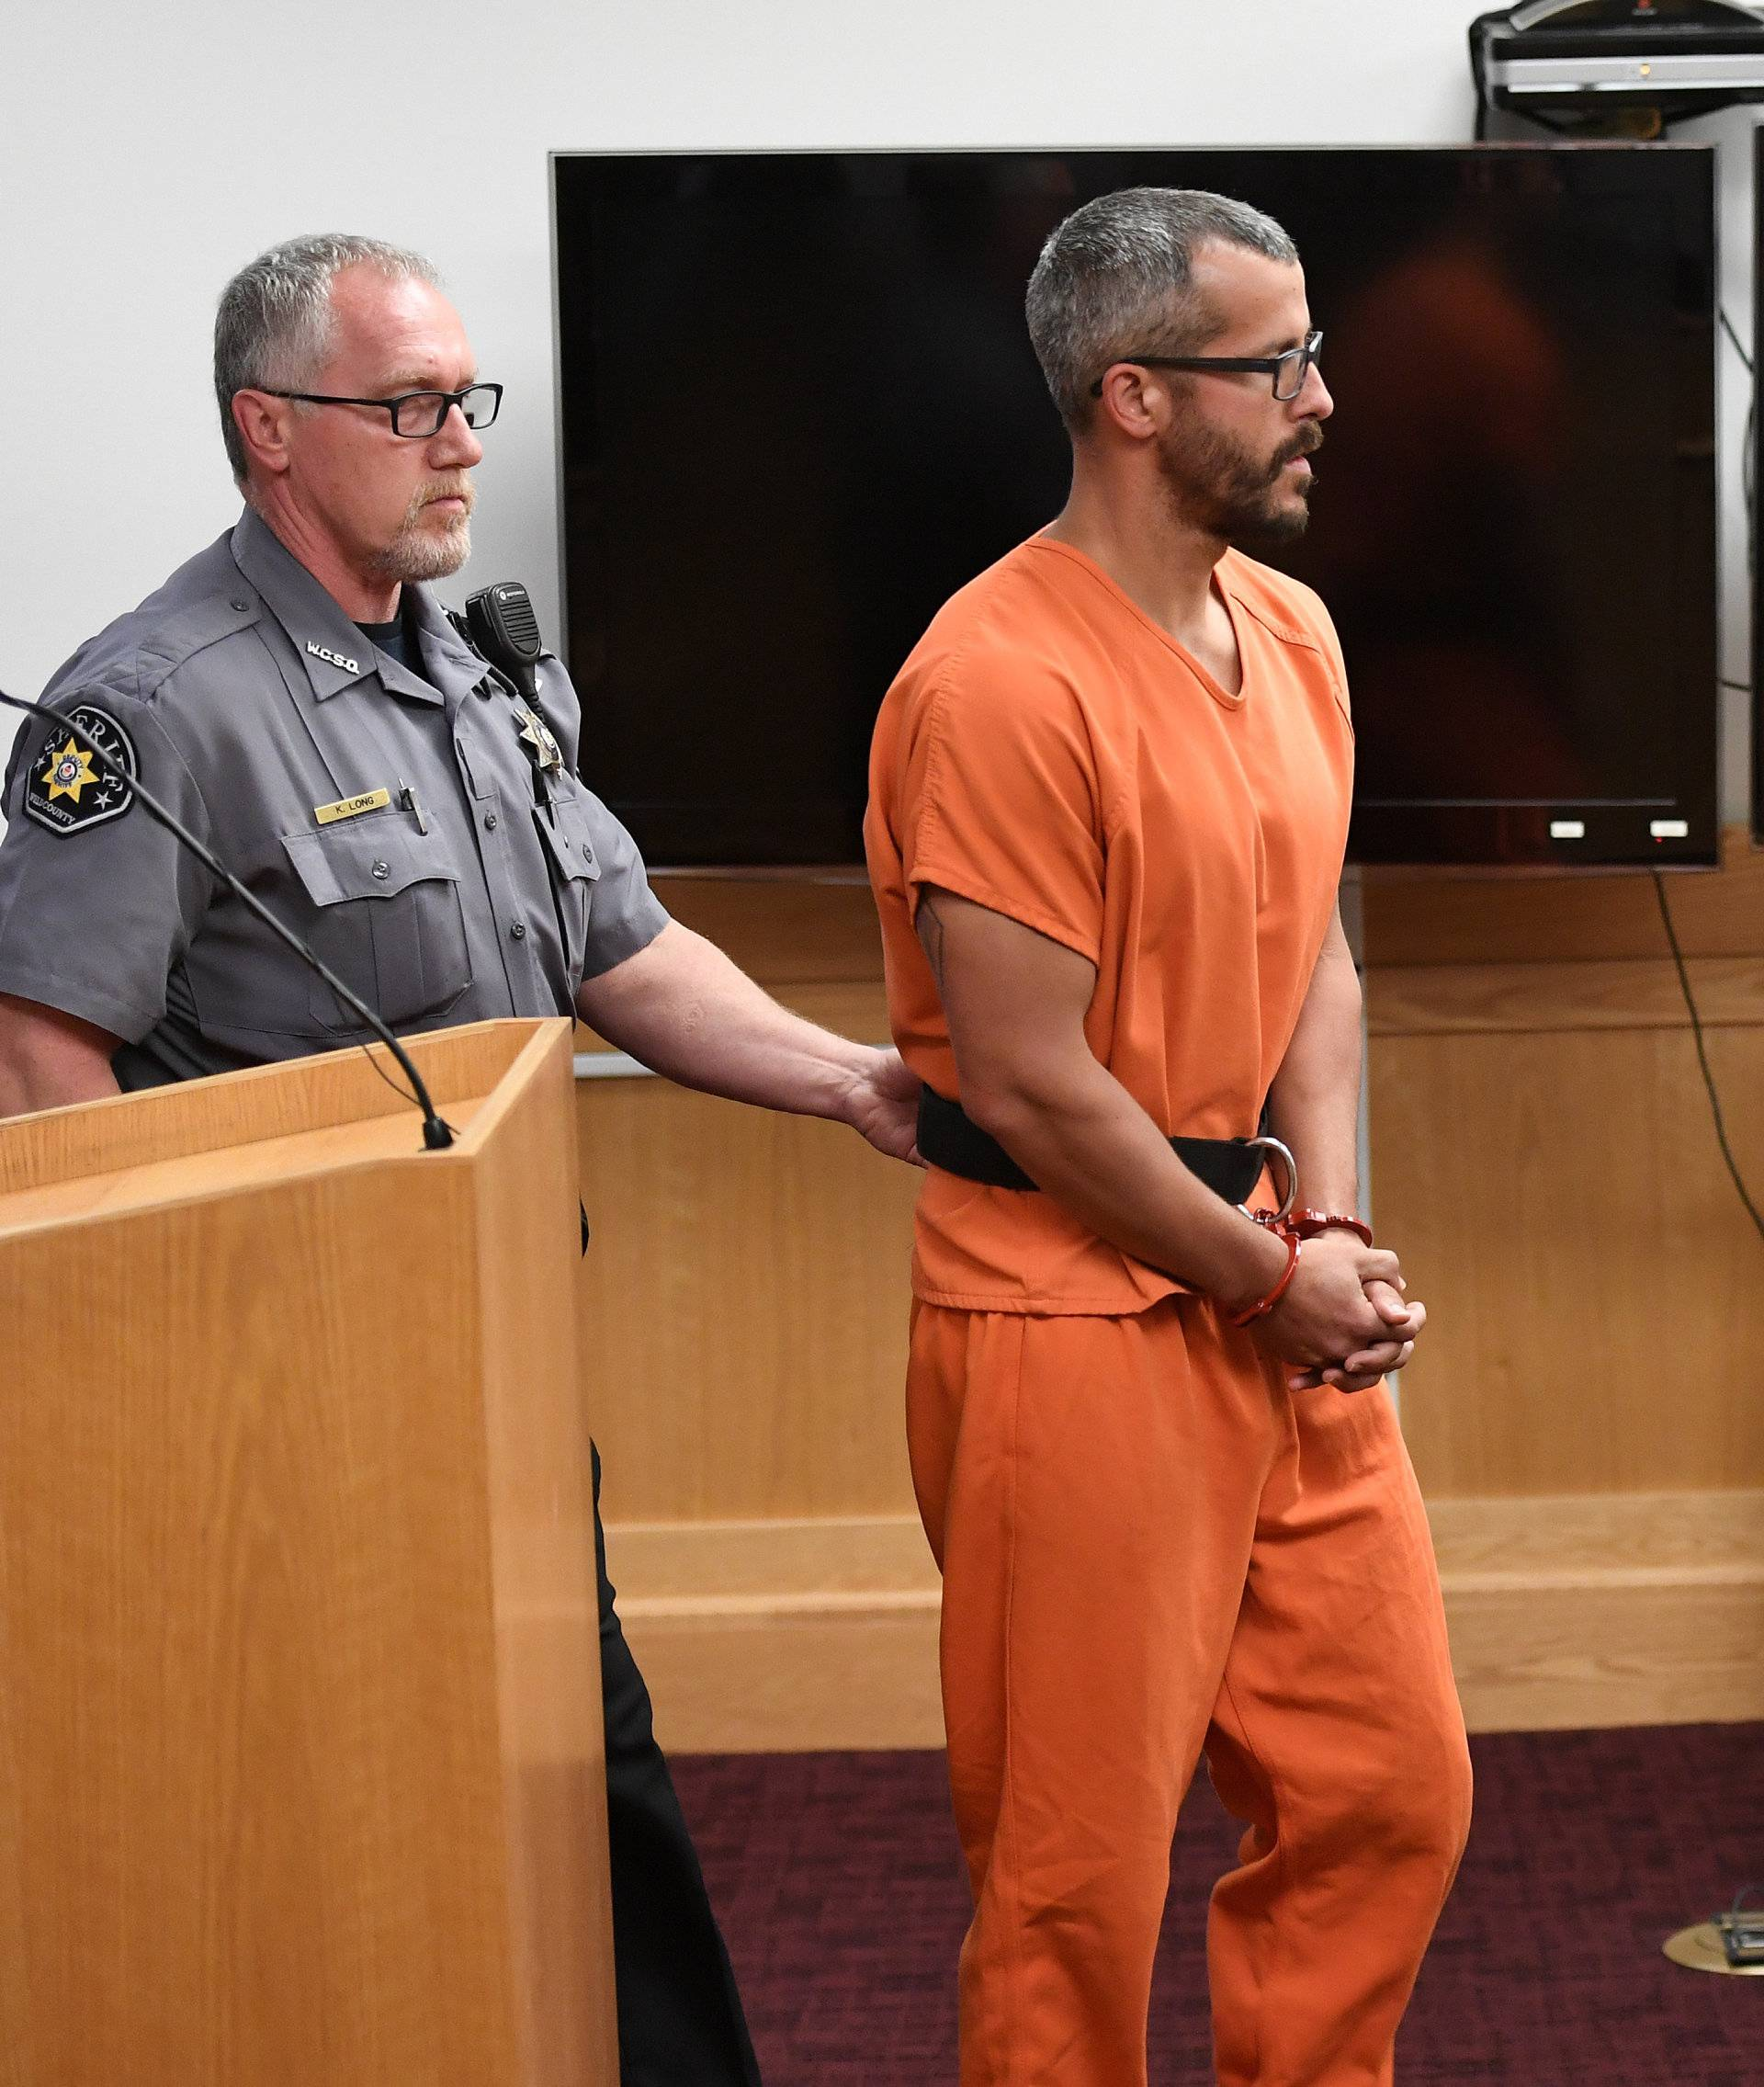 FILE PHOTO: Christopher Watts appears in court for his arraignment hearing in Greeley